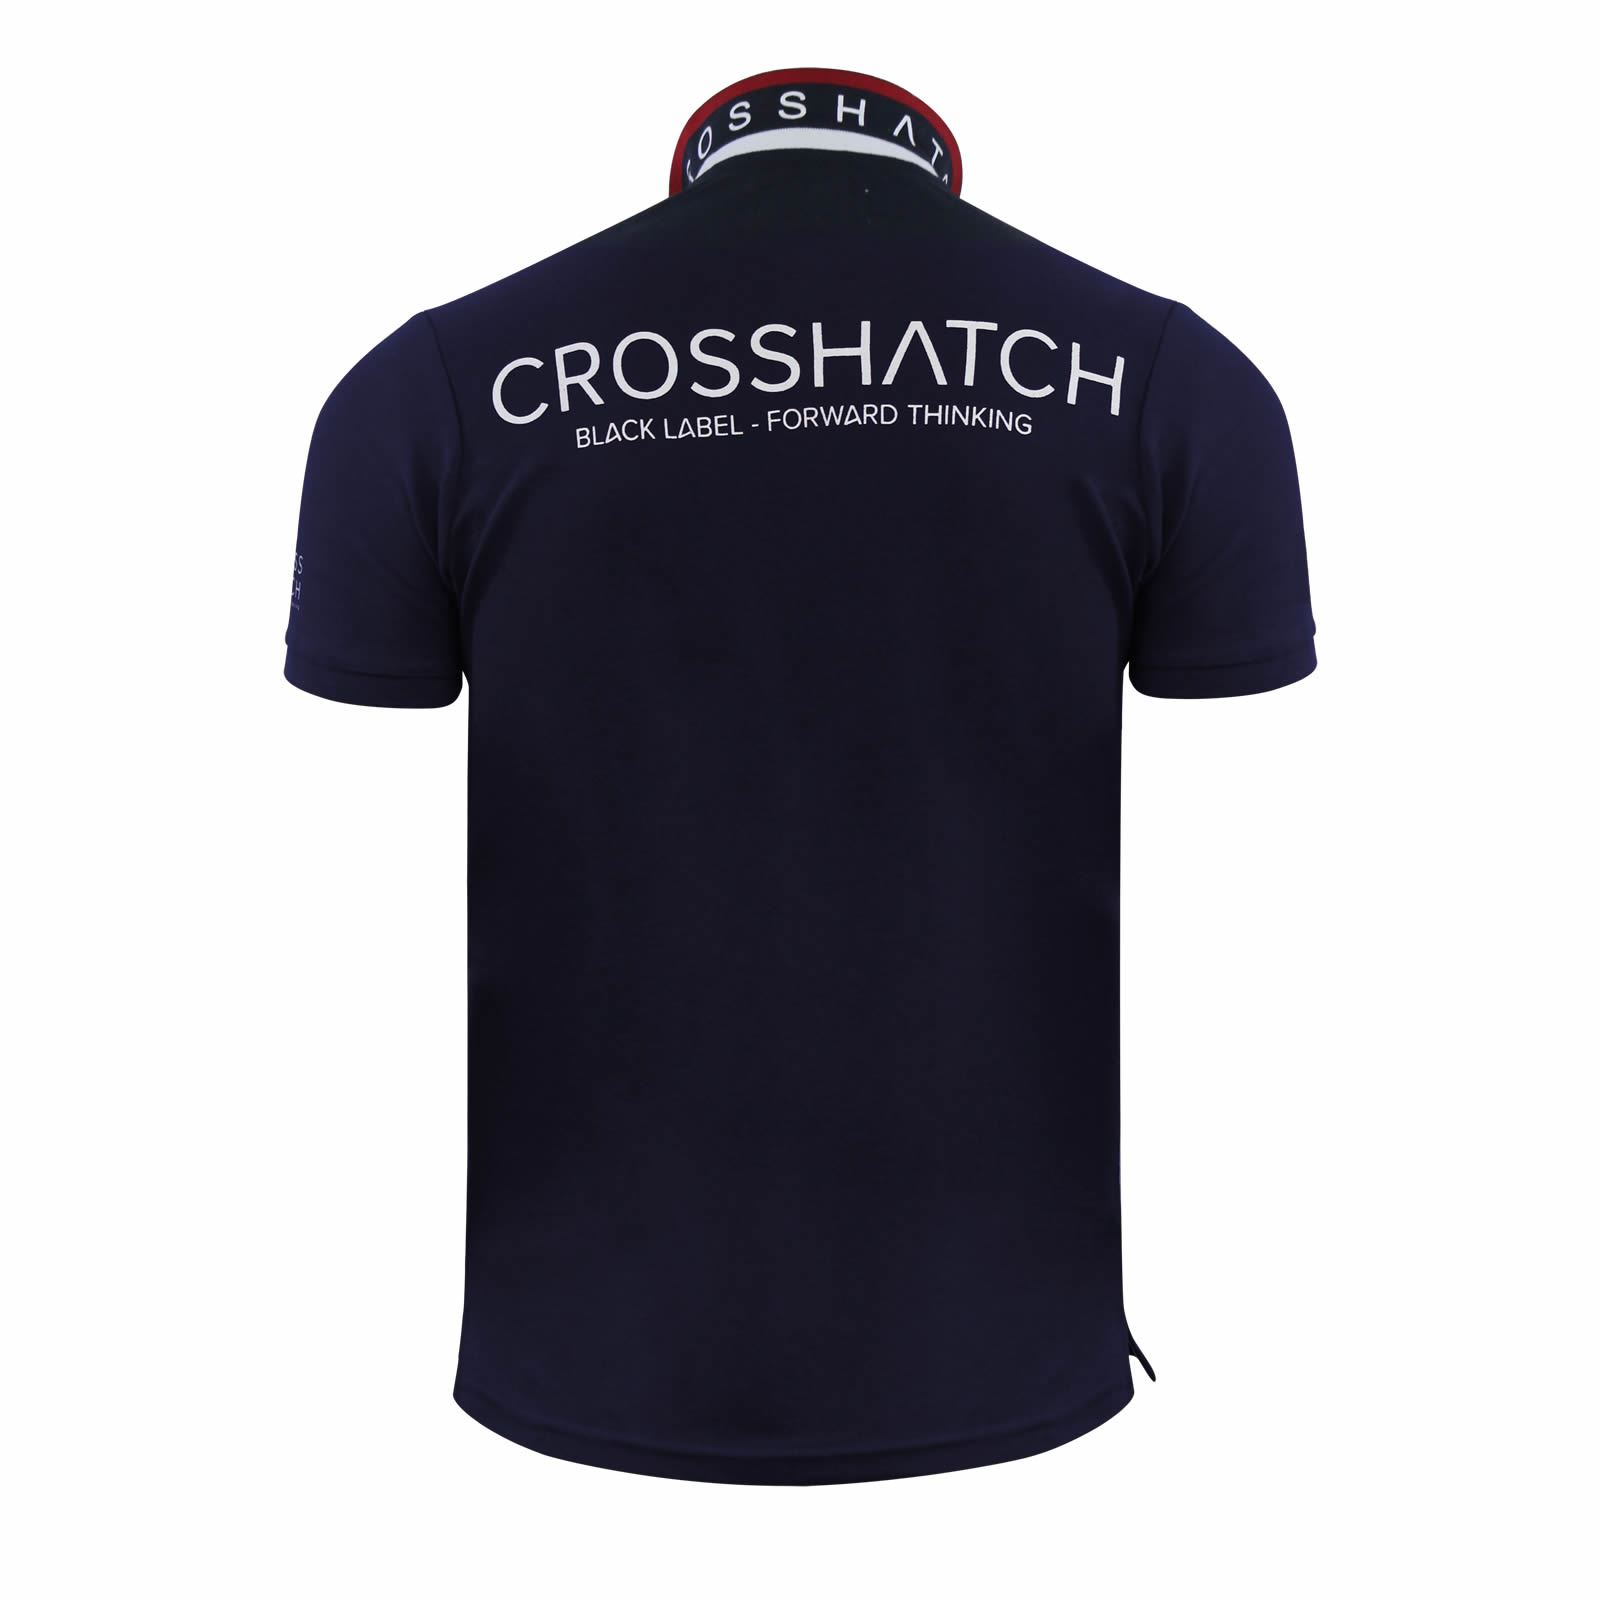 Crosshatch-Mens-Polo-T-Shirt-Pique-Polo-Cotton-Collared-Short-Sleeve-T-Shirt thumbnail 11